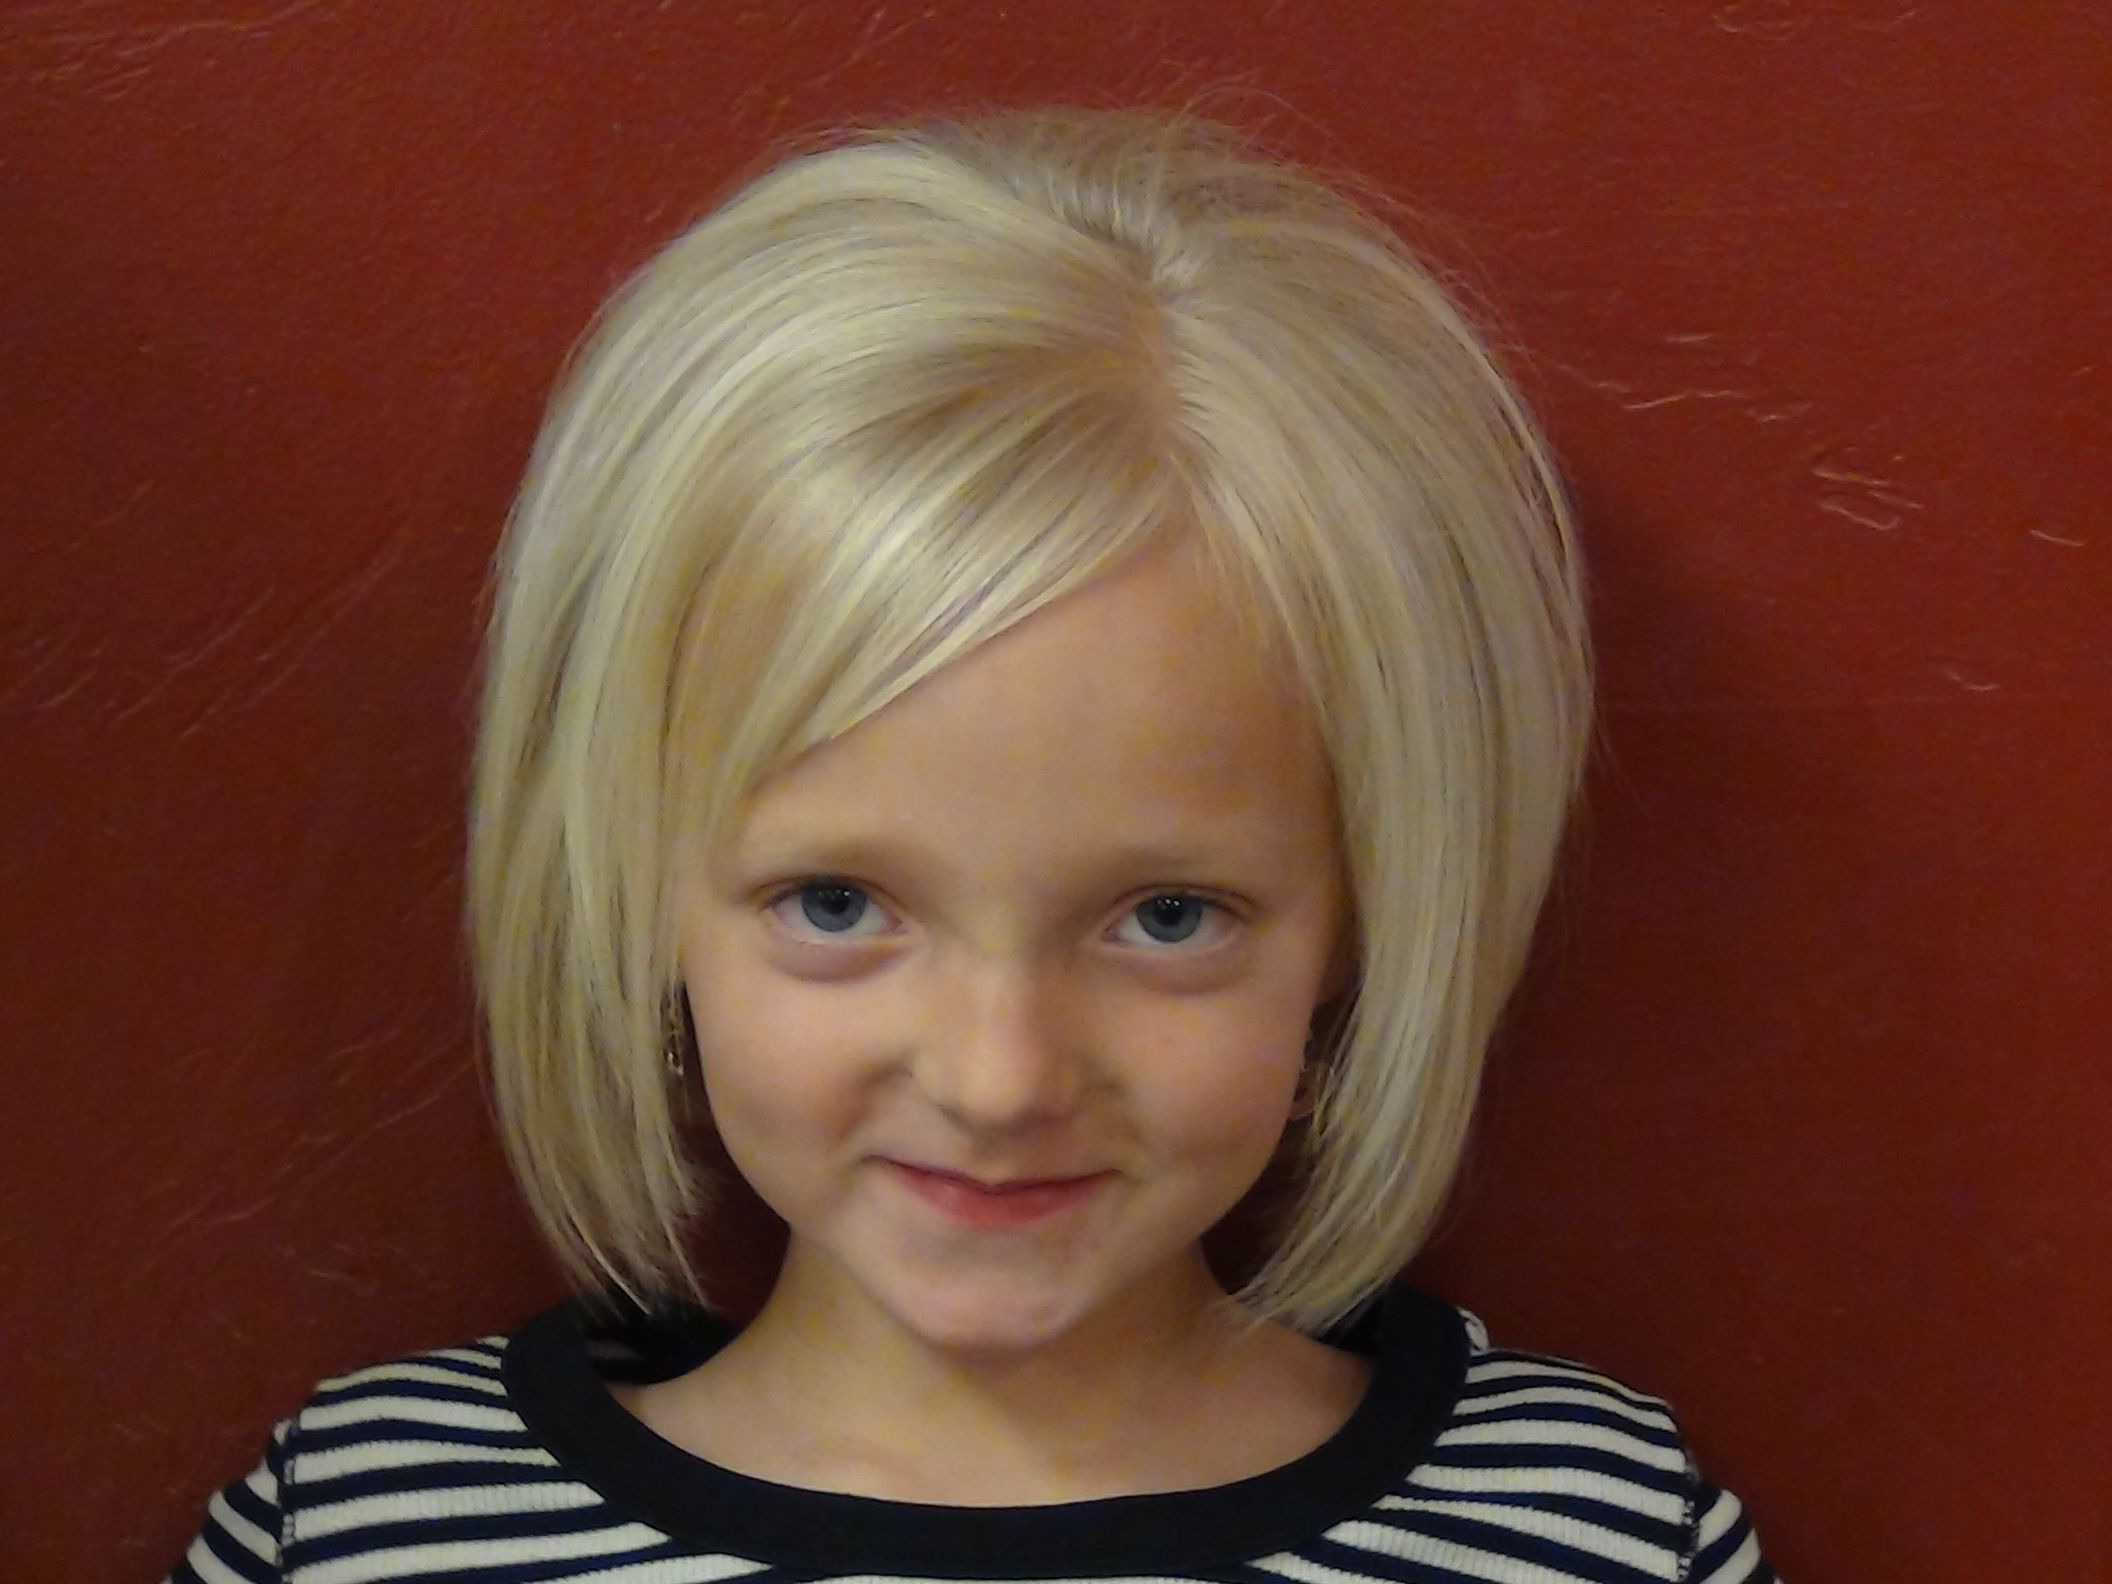 Kids hairstyles for short hair girls - Just Might Be Time To Cut B S Hair Another Angle On This Cute Girls Short Haircutslittle